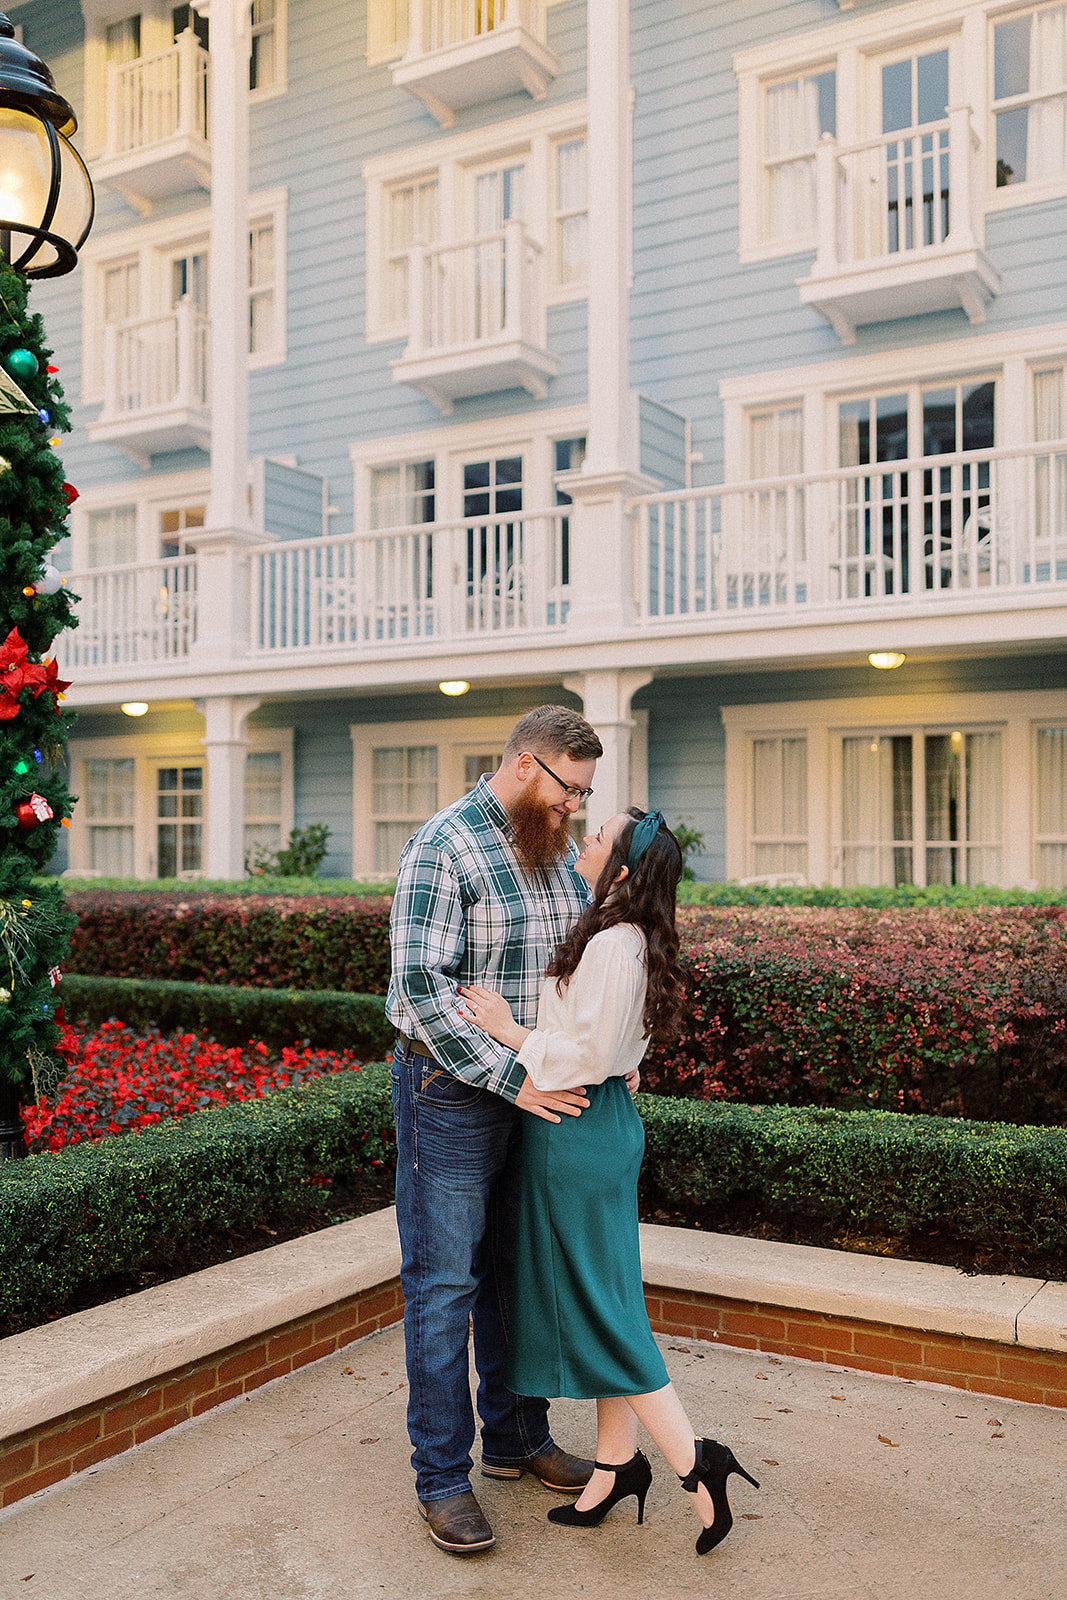 Cassidy_+_Kylor_Proposal_at_Disney_s_Beach_Club_Resort_Photographer_Casie_Marie_Photography-117